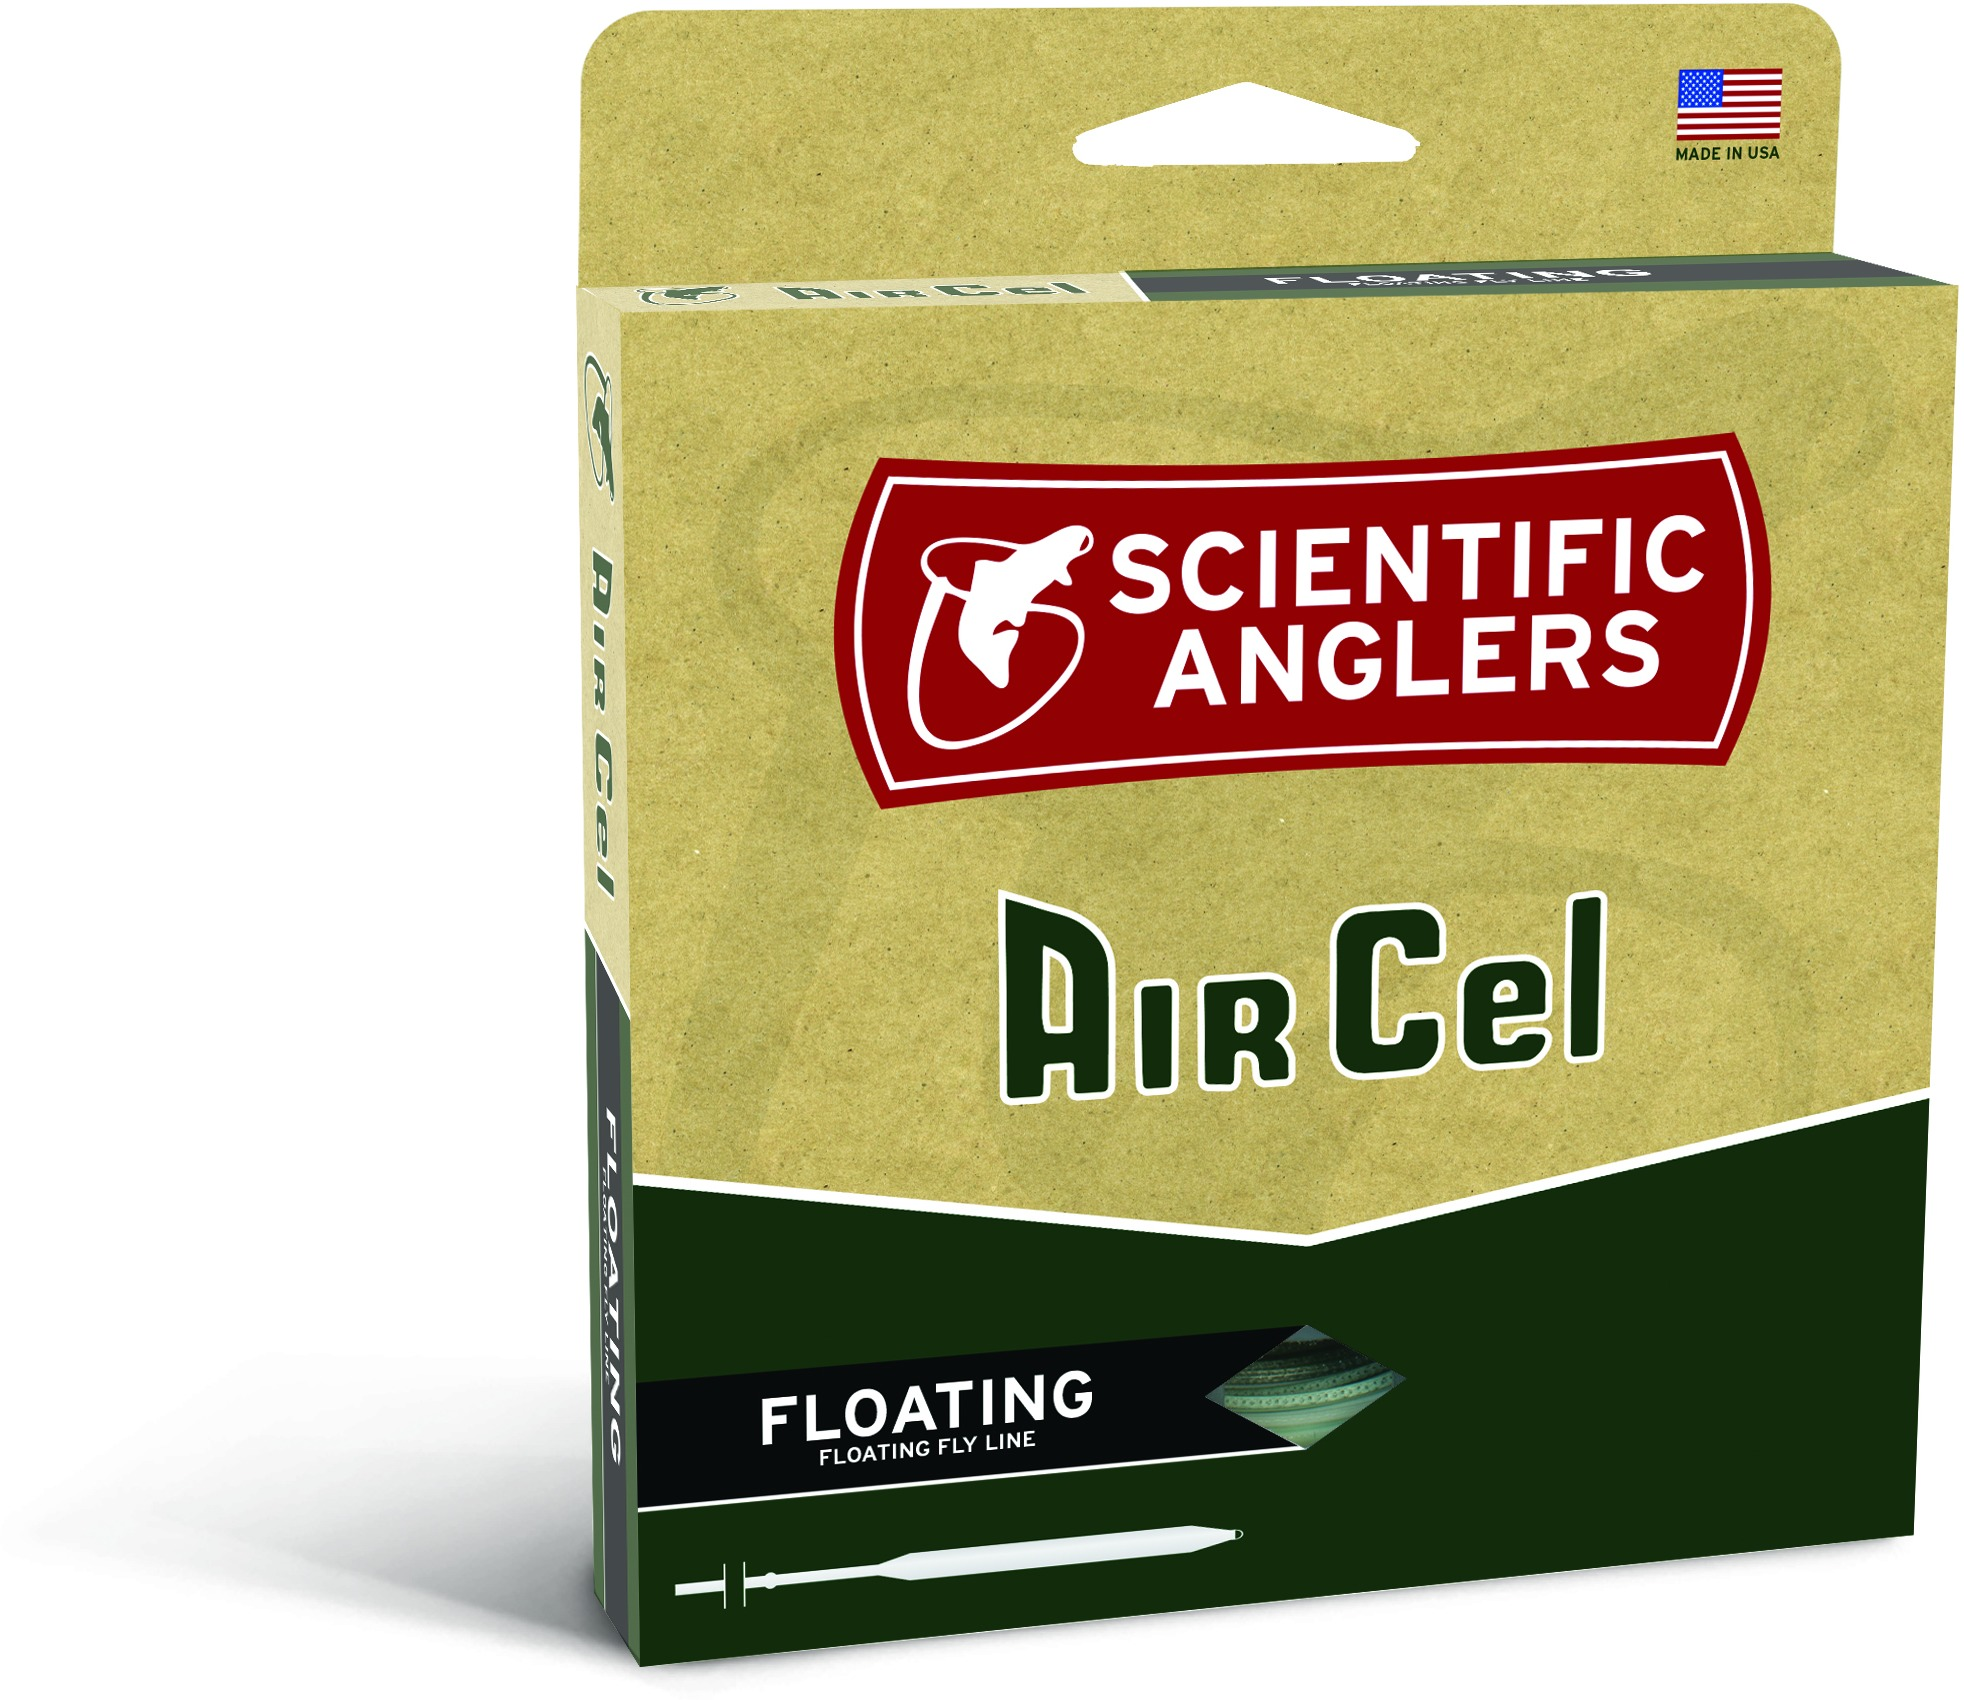 Scientific Anglers Air Cel Floating Fly Line-WF-6-F-Yellow